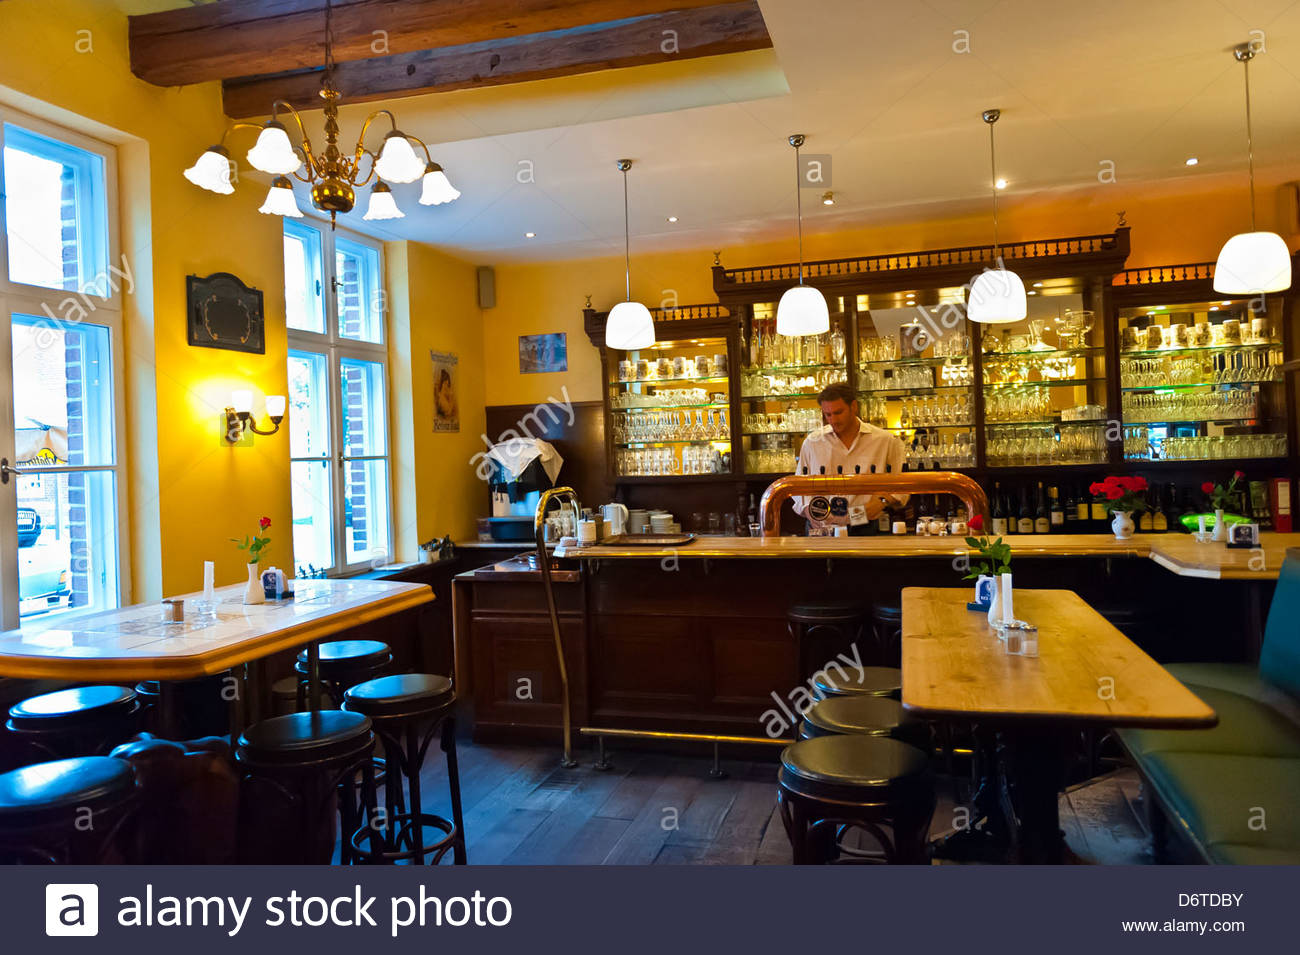 Interior View, Zum Fliegenden Hollander (Flying Dutchman) Bar And  Restaurant, Dutch Quarter Of Potsdam, Germany